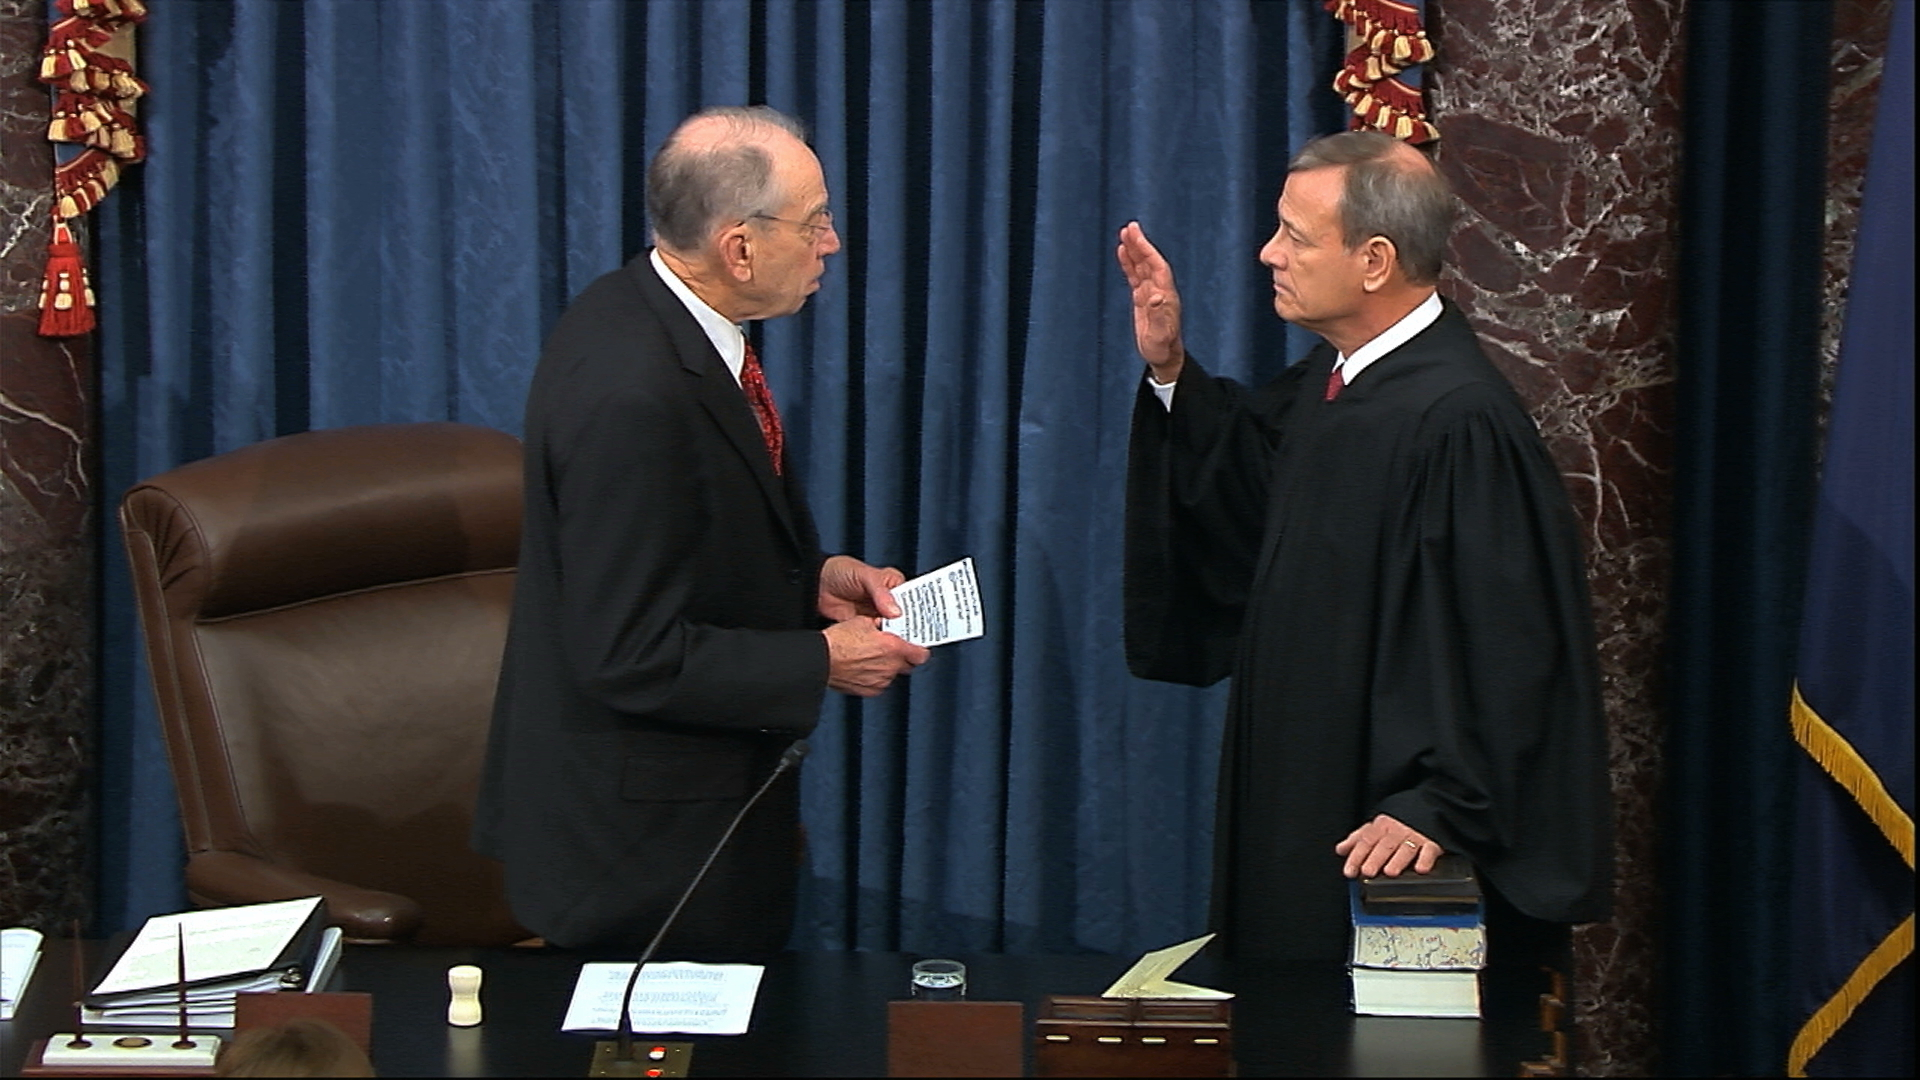 President Pro Tempore of the Senate Sen. Chuck Grassley, R-Iowa., swears in Supreme Court Chief Justice John Roberts as the presiding officer for the impeachment trial of President Donald Trump